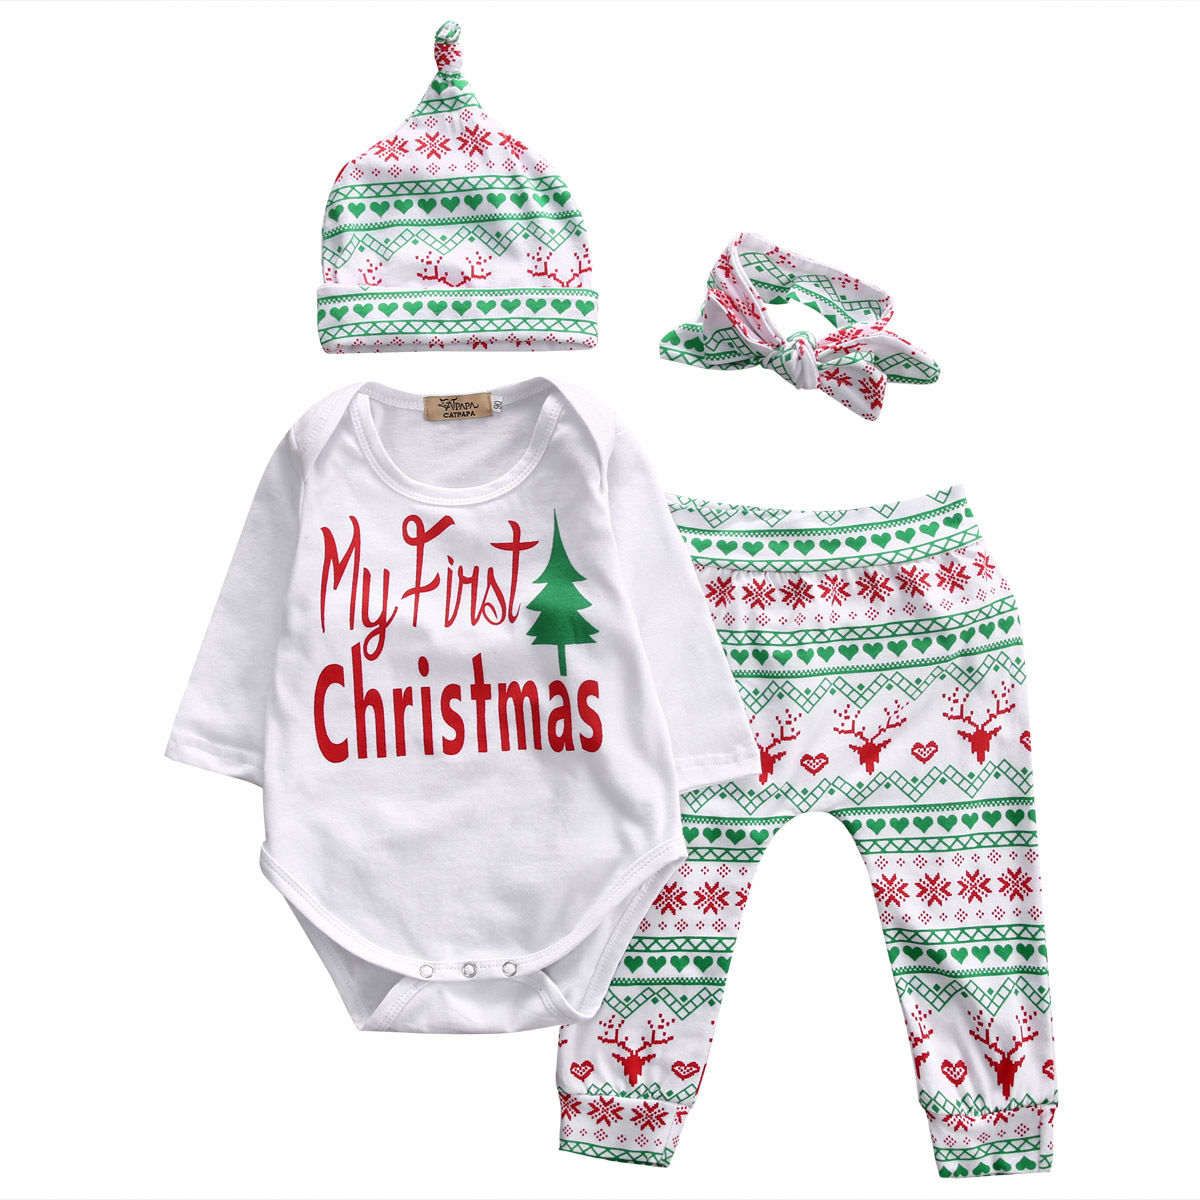 Compare Prices on Baby Christmas Leggings- Online Shopping/Buy Low ...